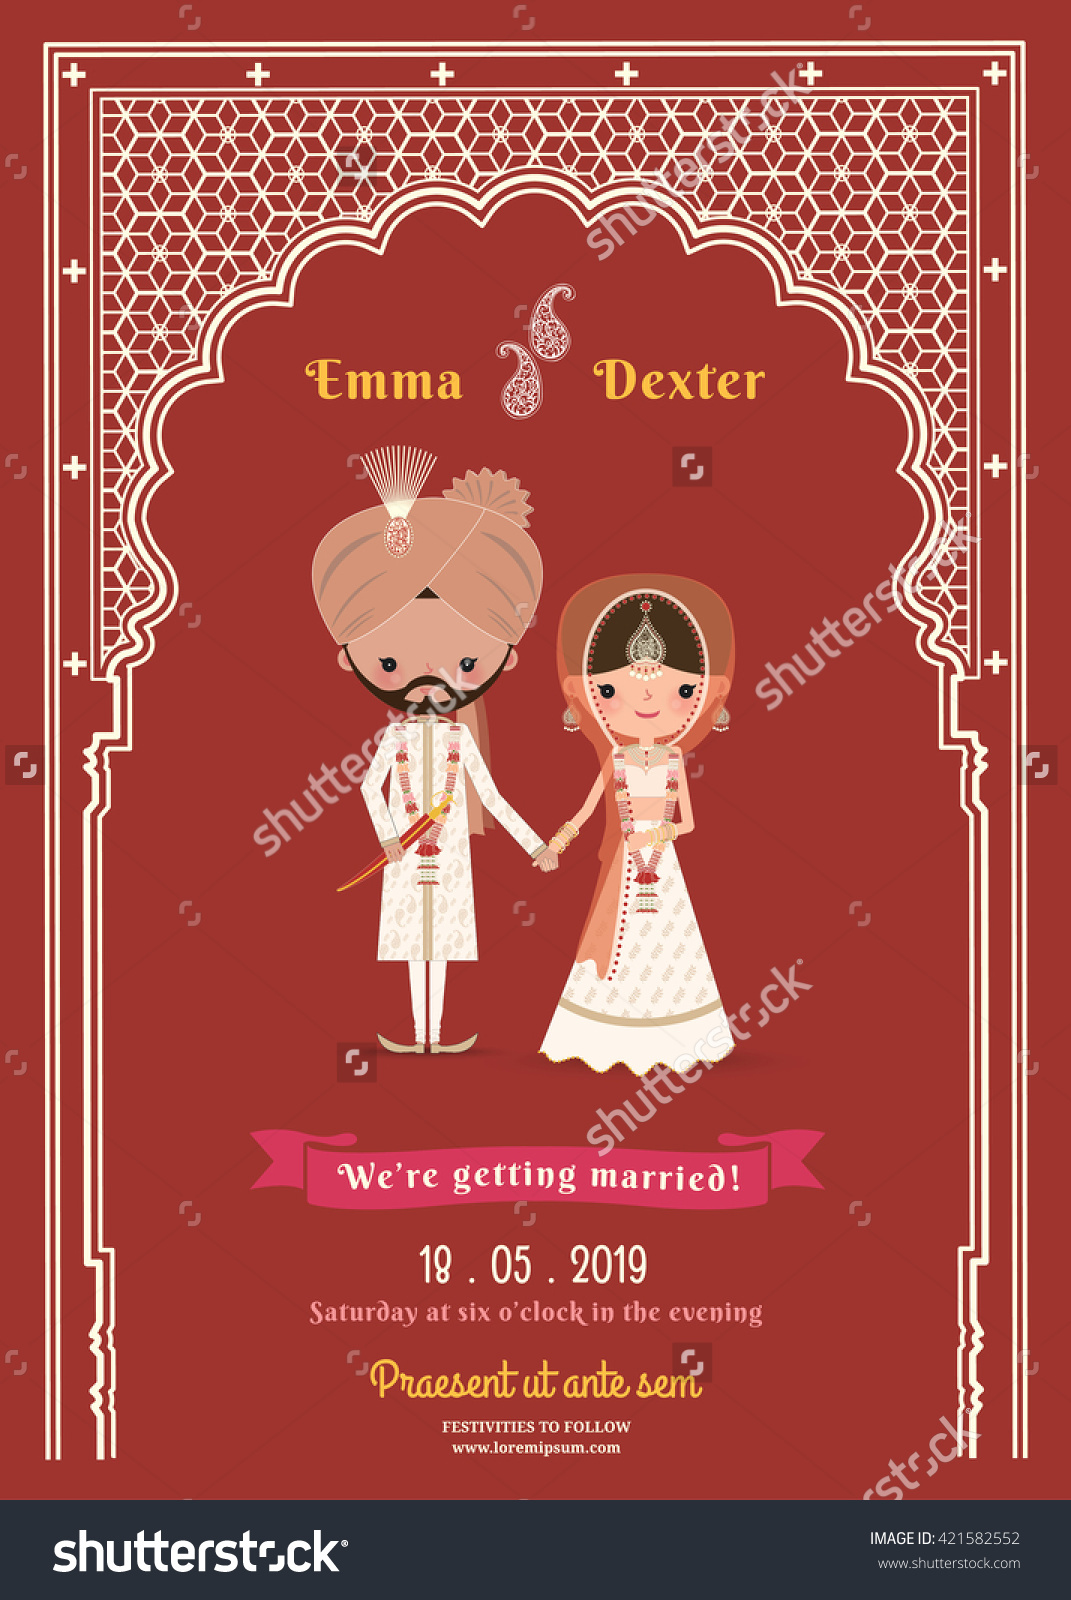 Indian Wedding Bride Groom Cartoon Save Stock Vector 421582552.